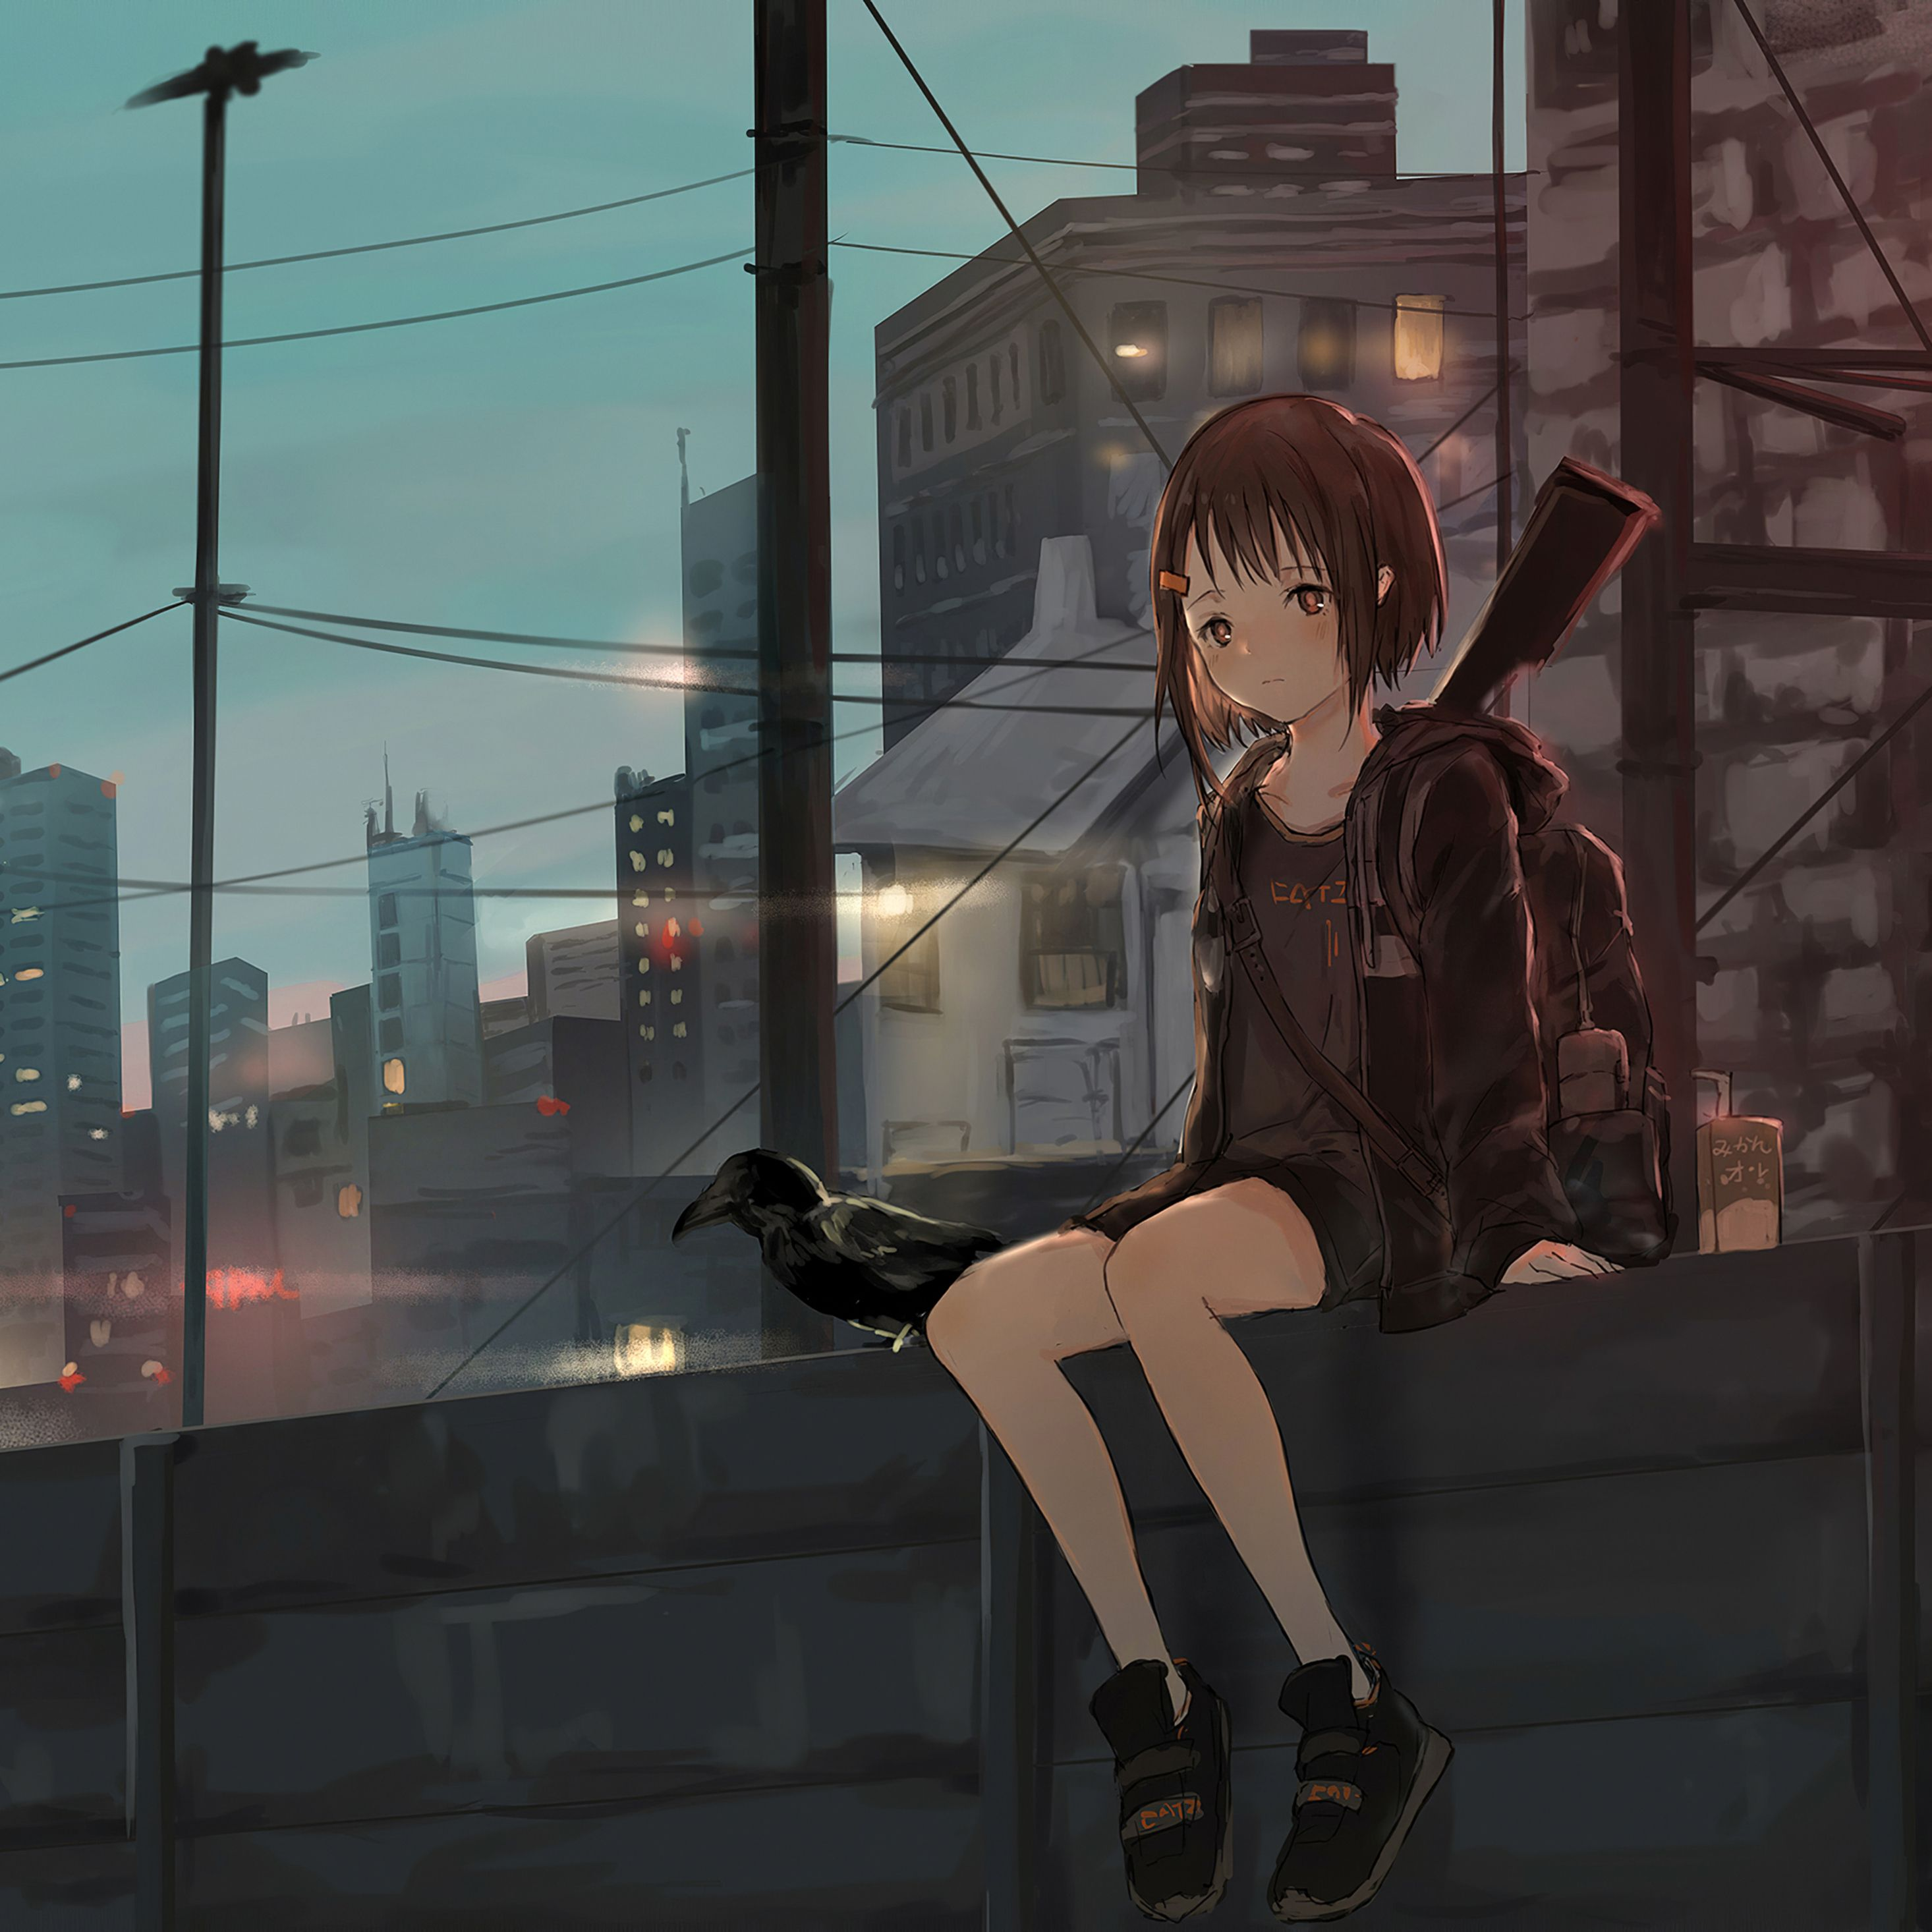 Anime dp for girls whatsapp dp images profile picture. Aesthetic Sad Anime Girl Wallpapers Top Free Aesthetic Sad Anime Girl Backgrounds Wallpaperaccess